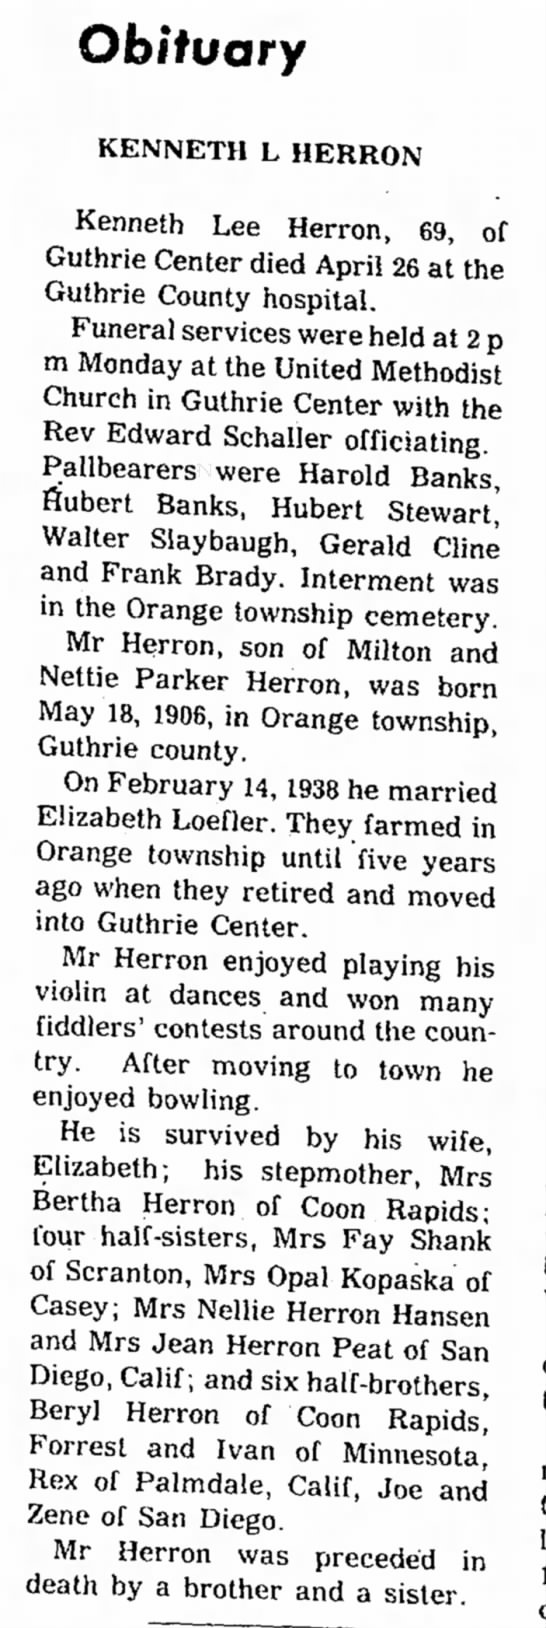 Obit: Kenneth L Herron May 1975 in Bayard News pg 3